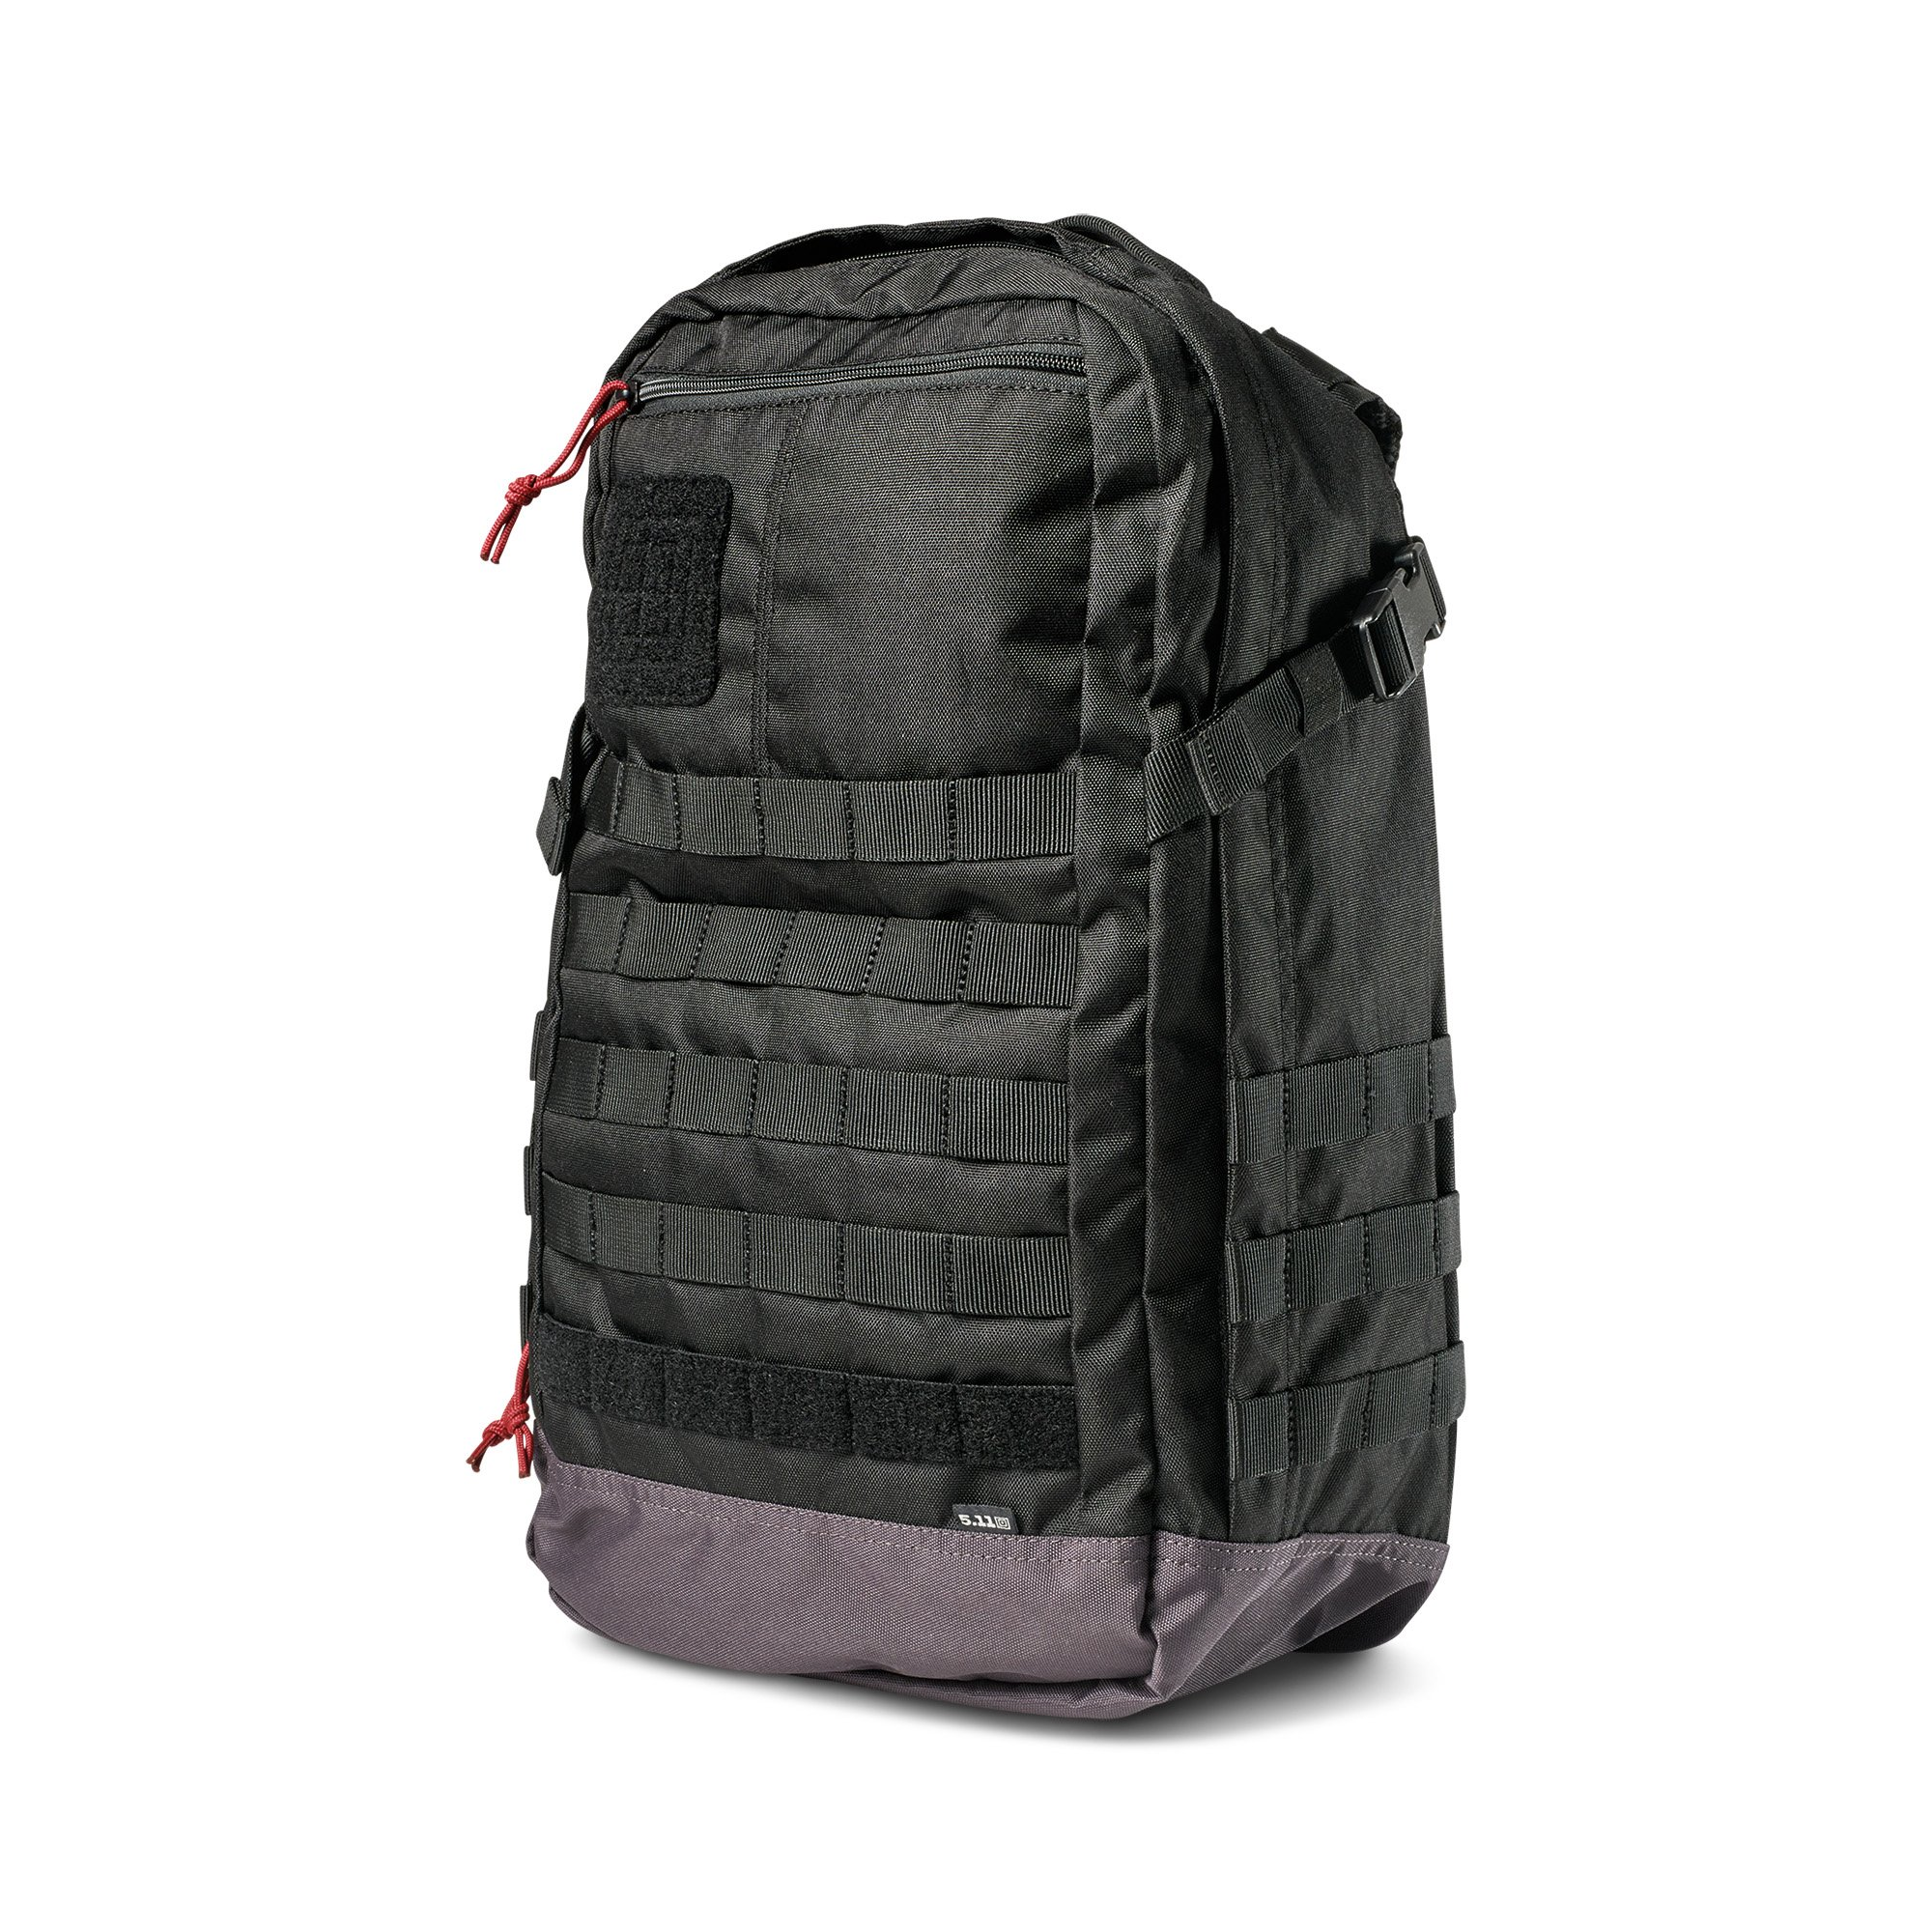 5.11 Rapid Origin Tactical Backpack with Laptop Sleeve, Hydration Pocket, MOLLE, Style 56355, Black by 5.11